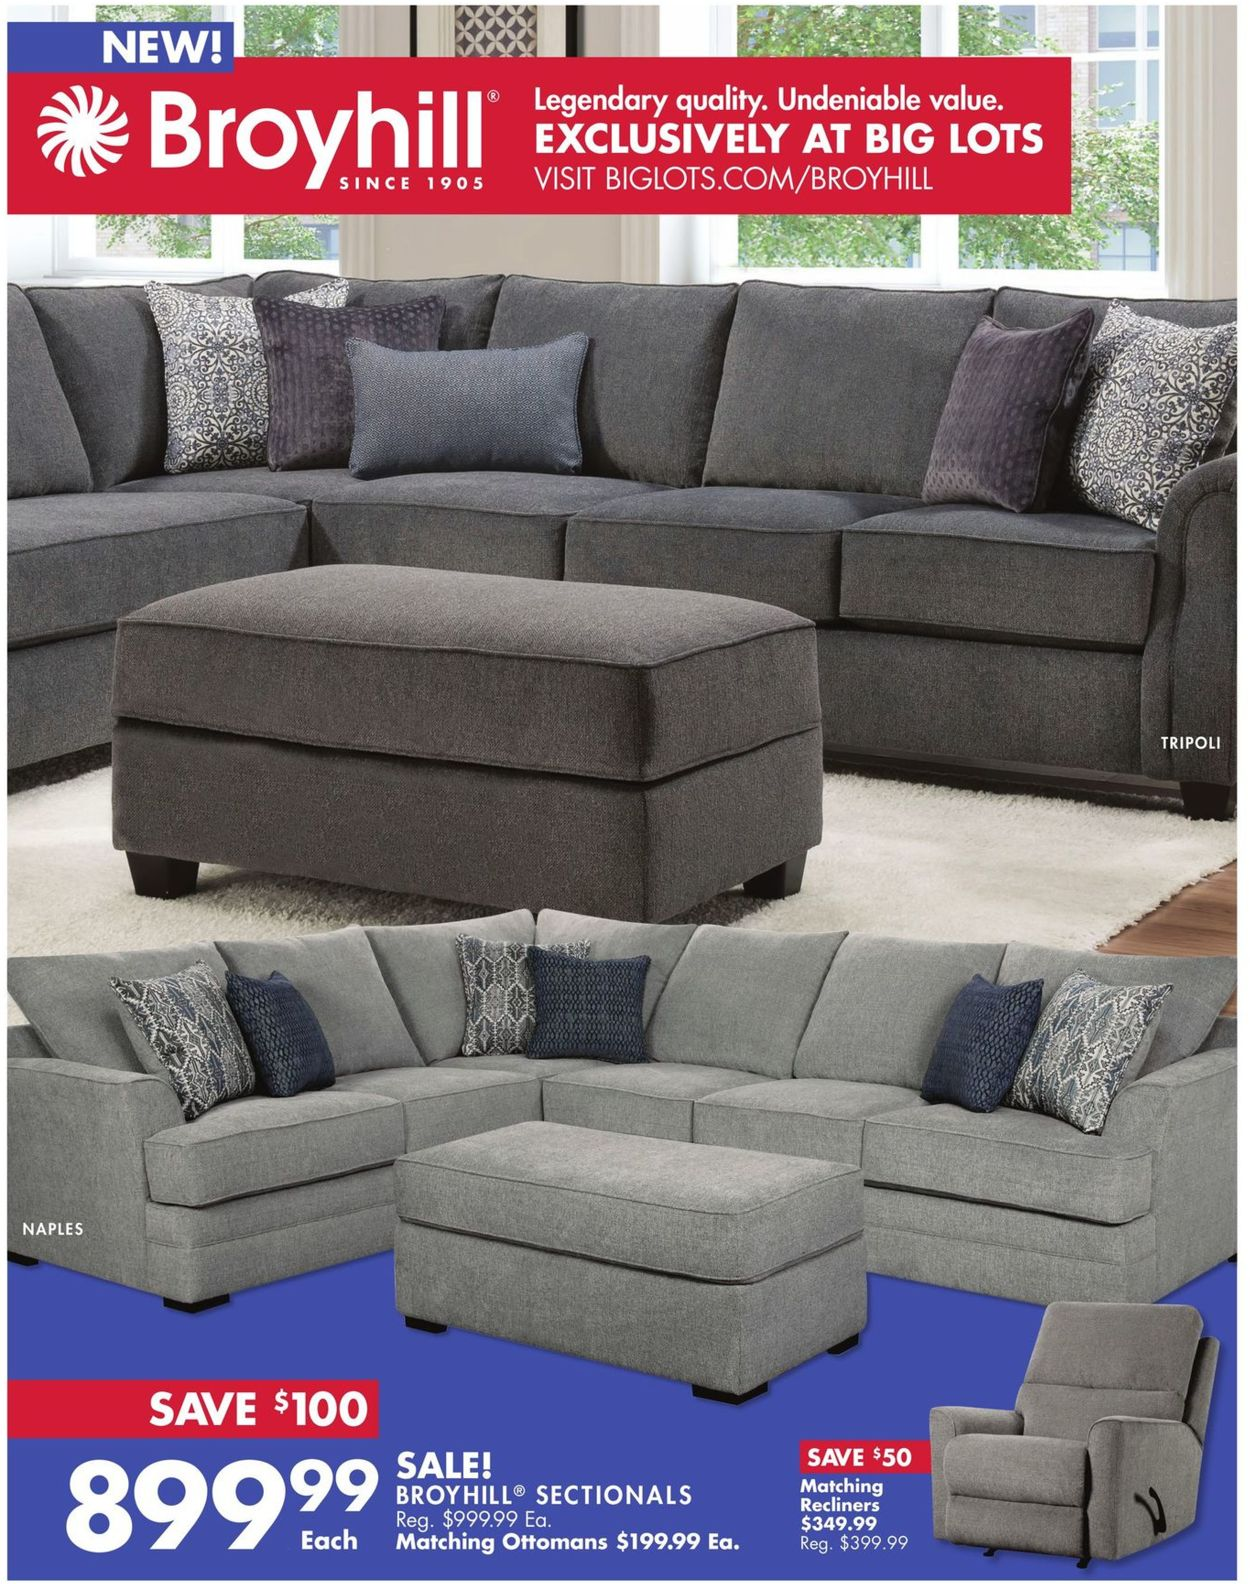 Big Lots Current Weekly Ad 02 08 02 22 2020 3 Frequent Ads Com